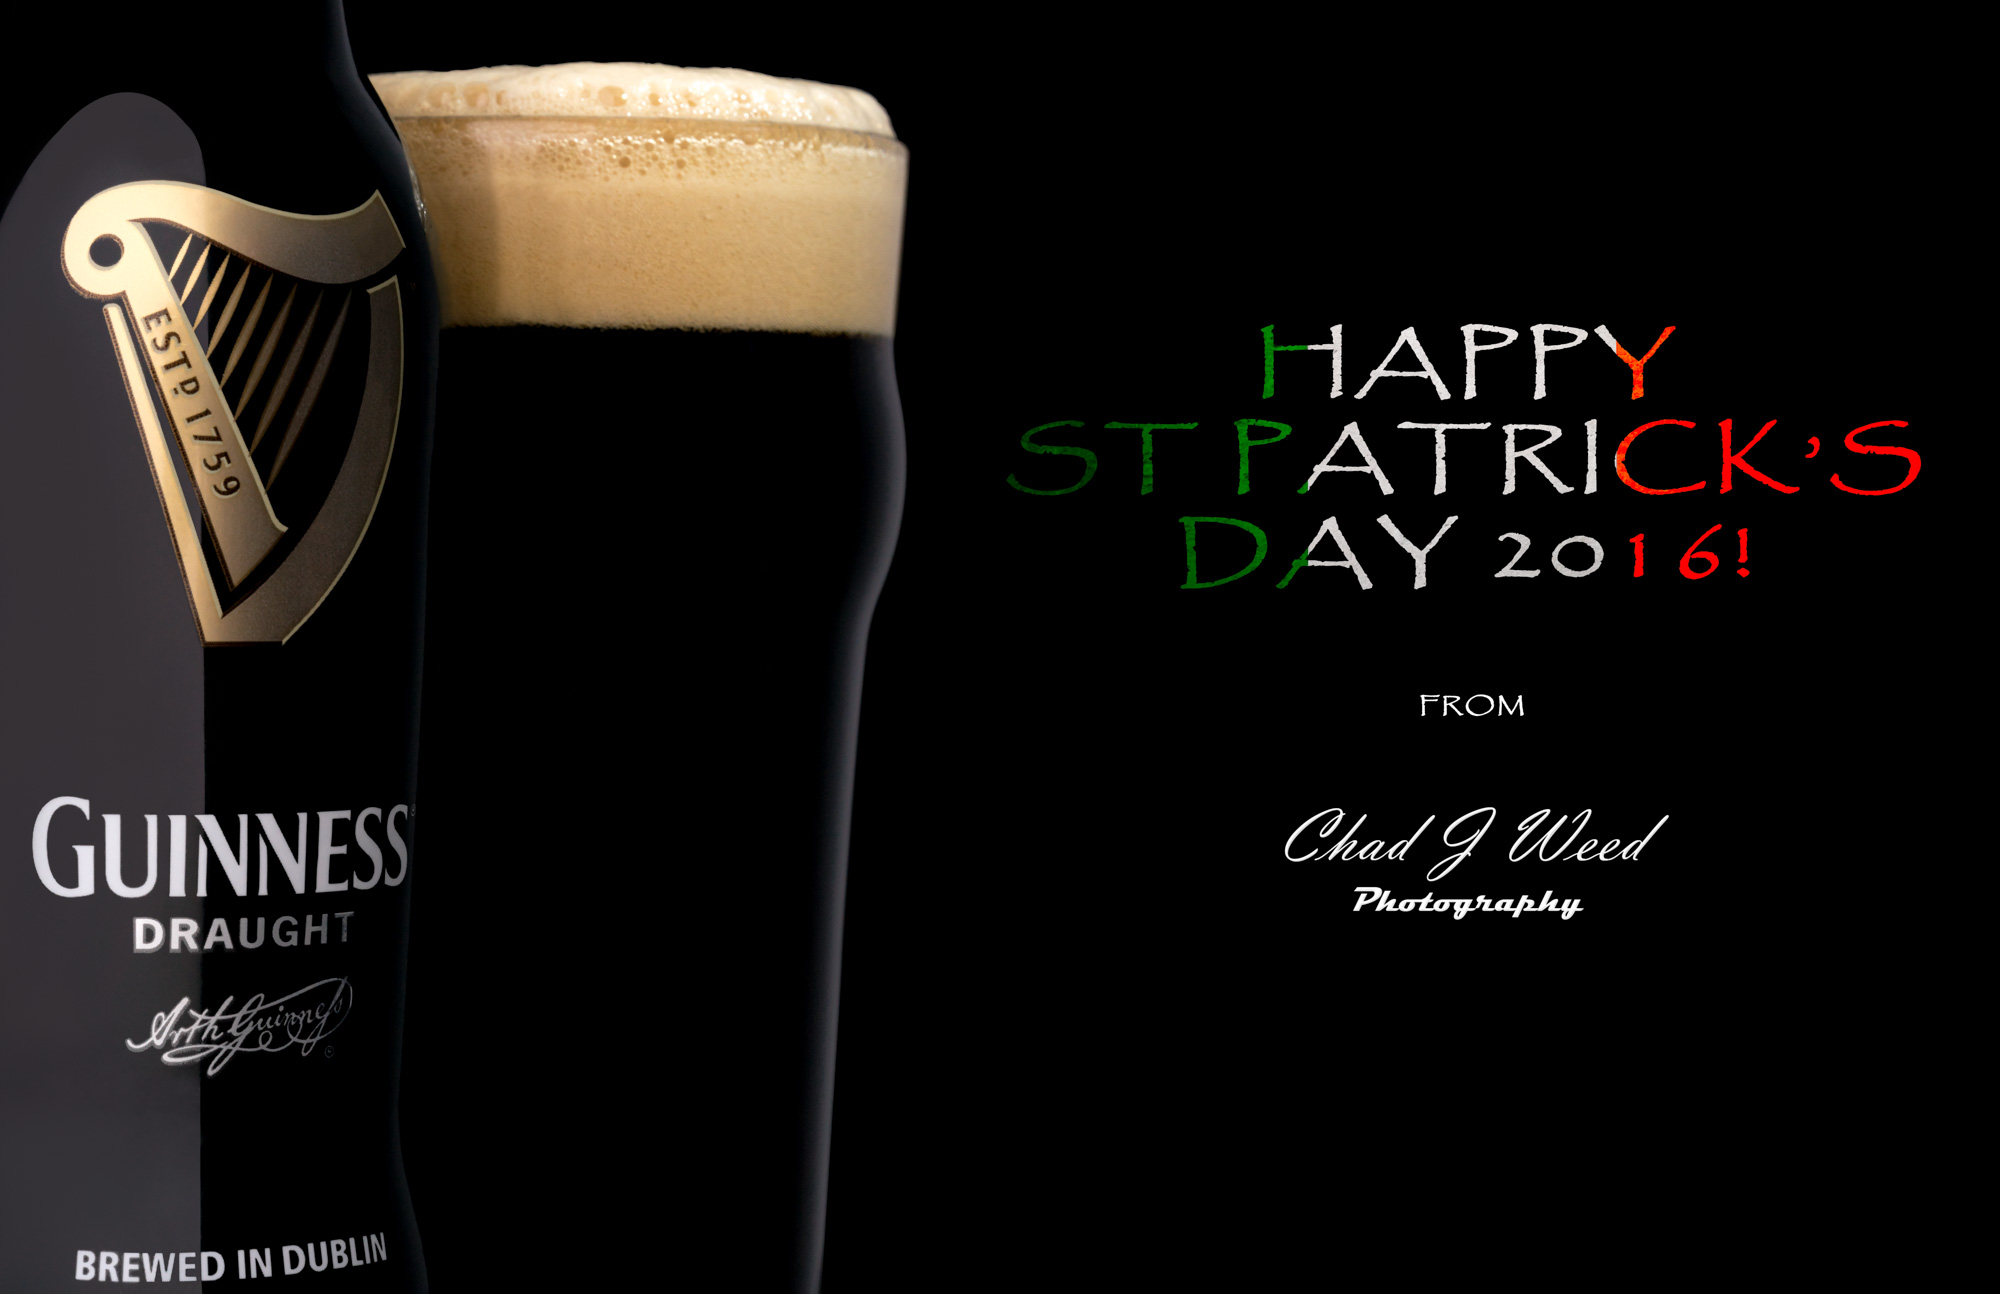 Happy St Patrick's Day 2016 Guinness Draught Beer Arizona Commercial Beverage Photographer Chad J Weed